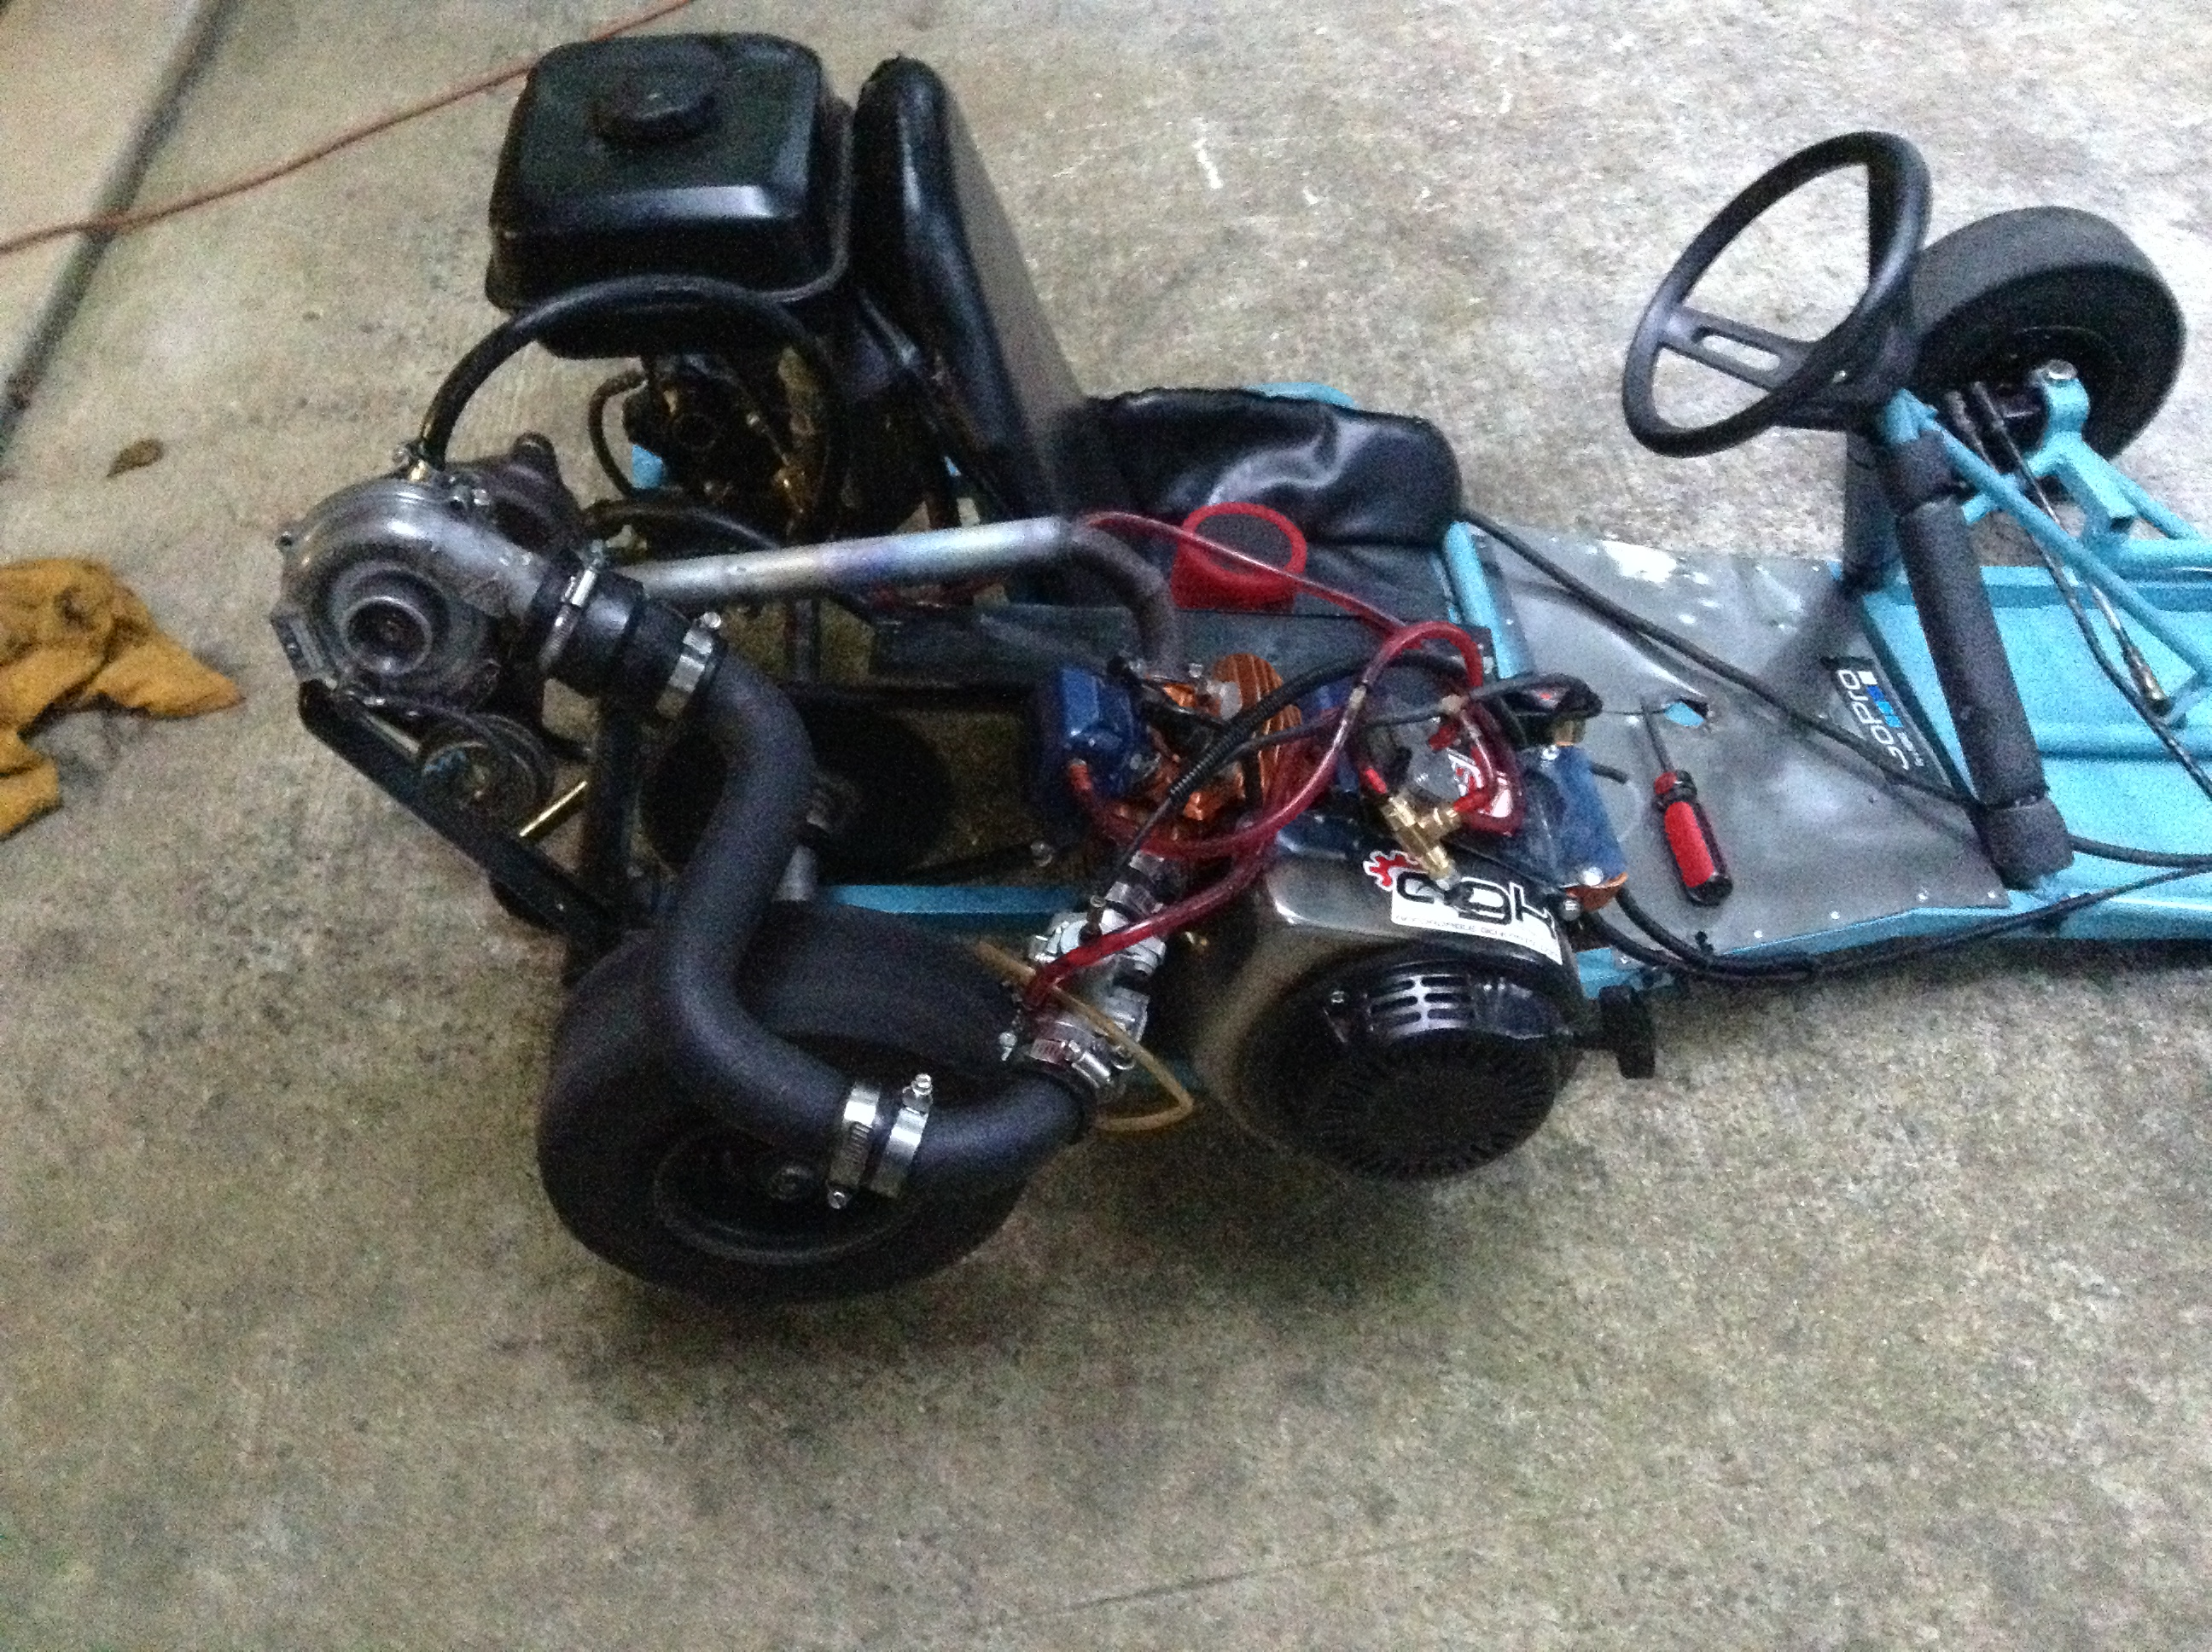 Reborn: Race Kart Turbocharged | Go-Kart Mods